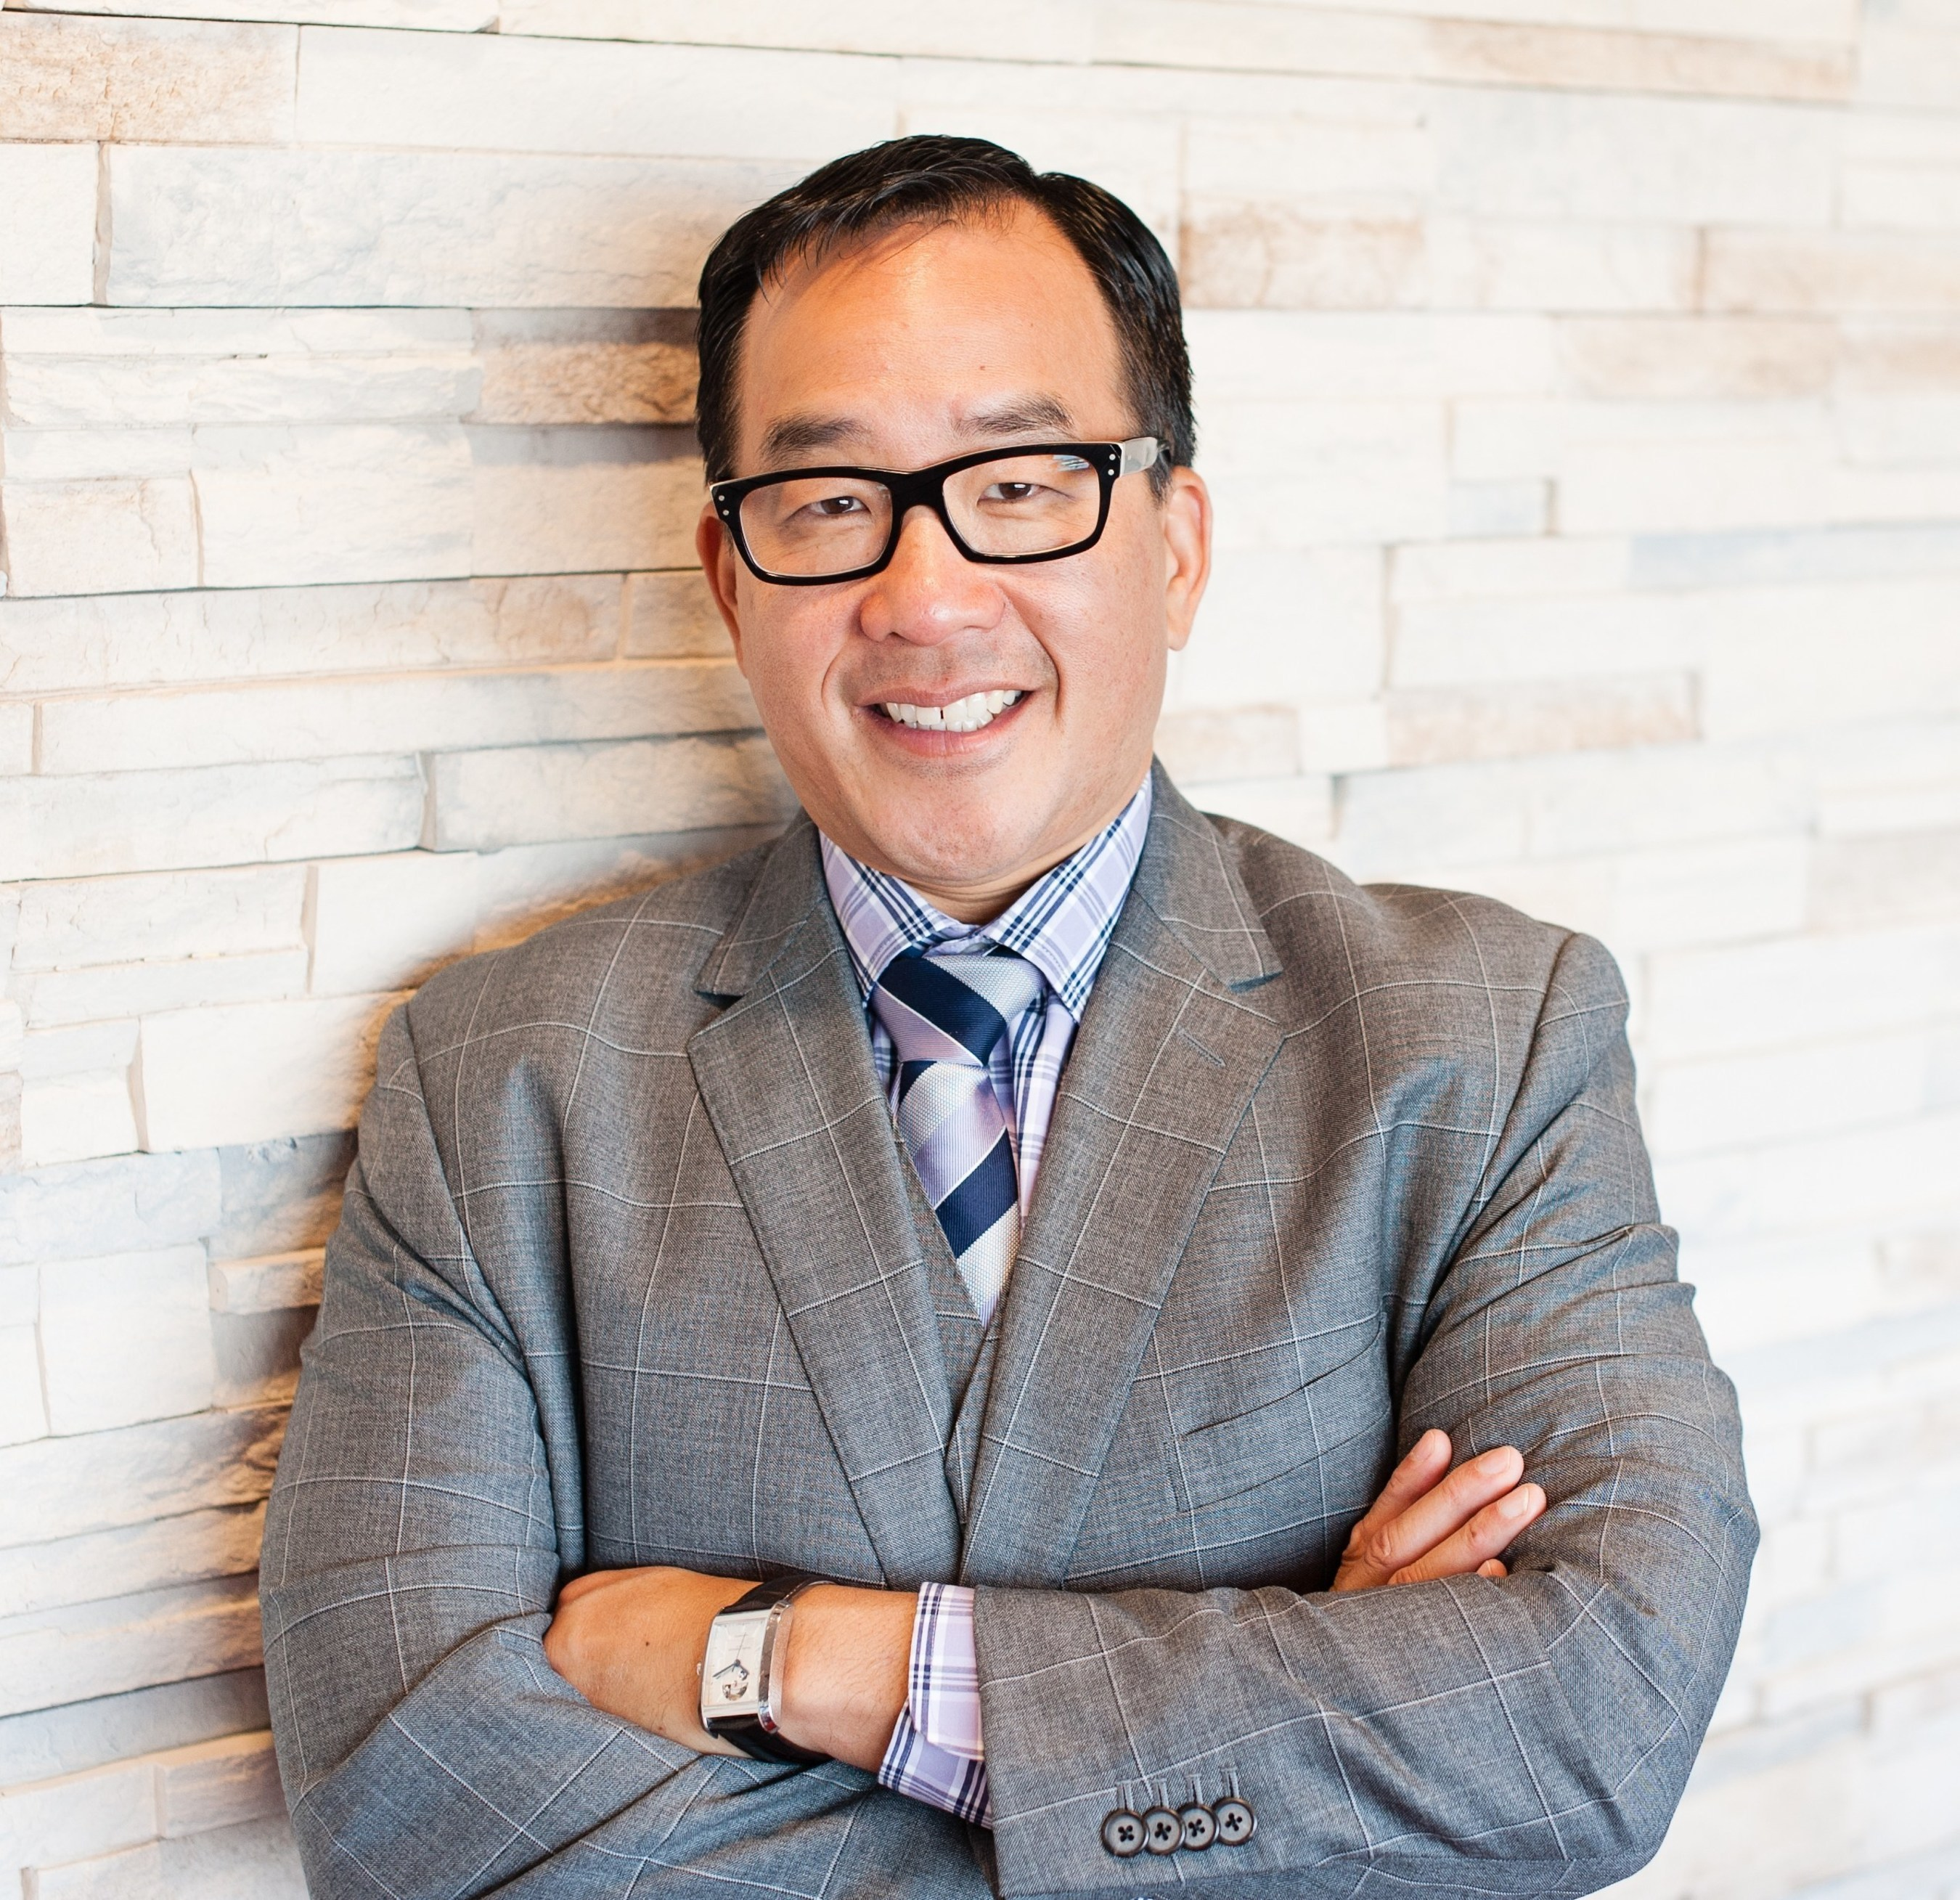 Kelly Huang, Ph.D. will join Galderma as Vice President and General Manager of the company's Aesthetic and Corrective Business Unit in the United States.